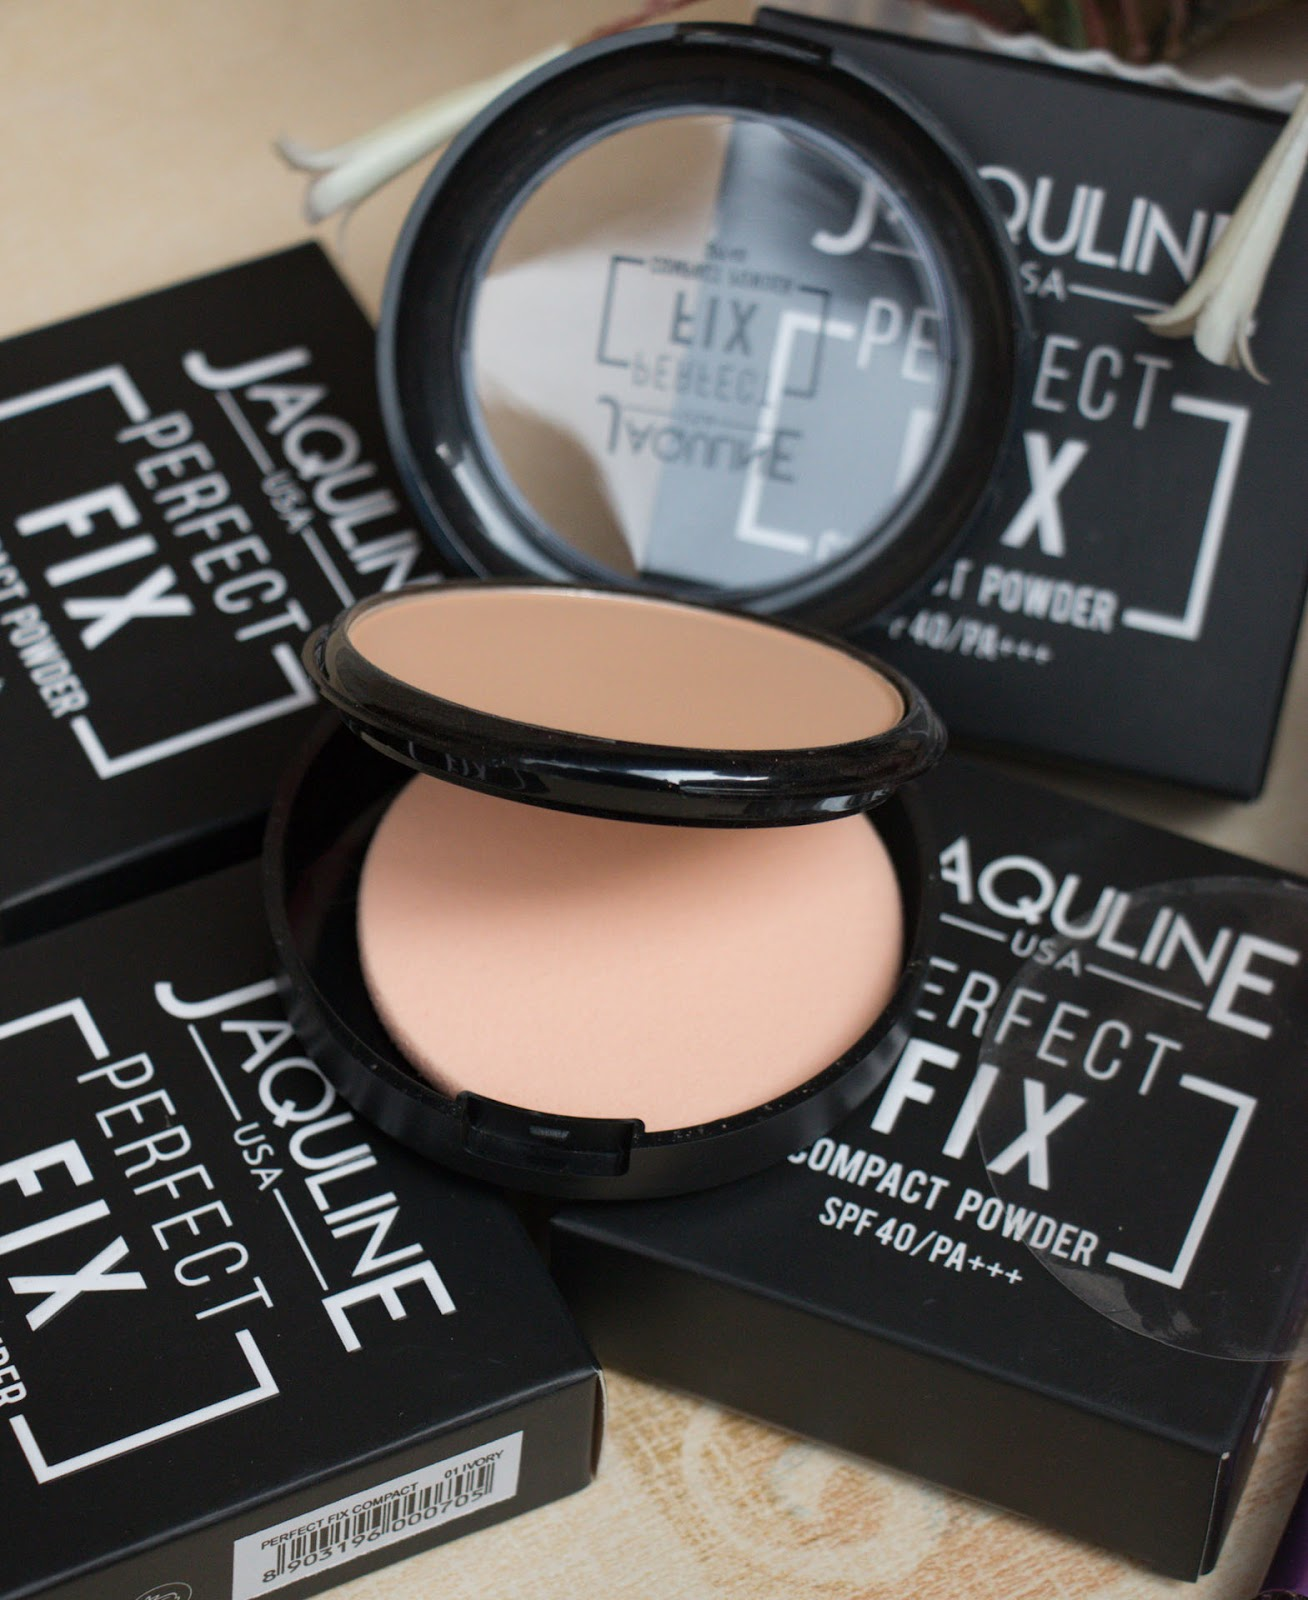 Jaquline USA Compact Powder Puff